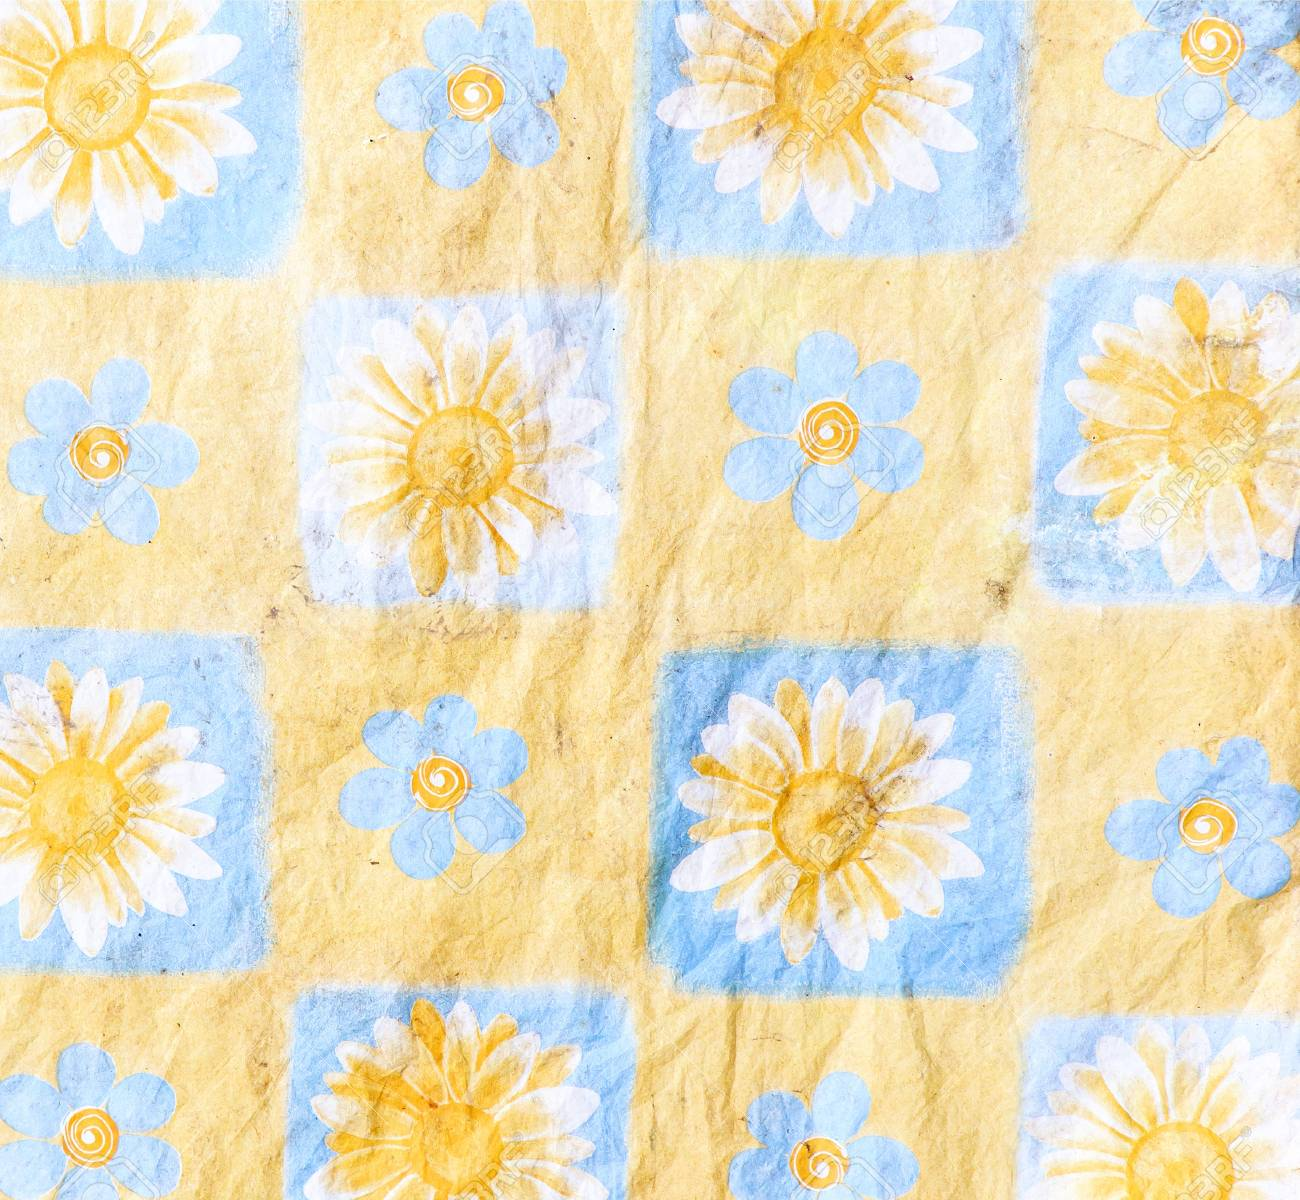 Stain Sunflower Wallpaper In The Bedroom Stock Photo Picture And Royalty Free Image Image 17922301